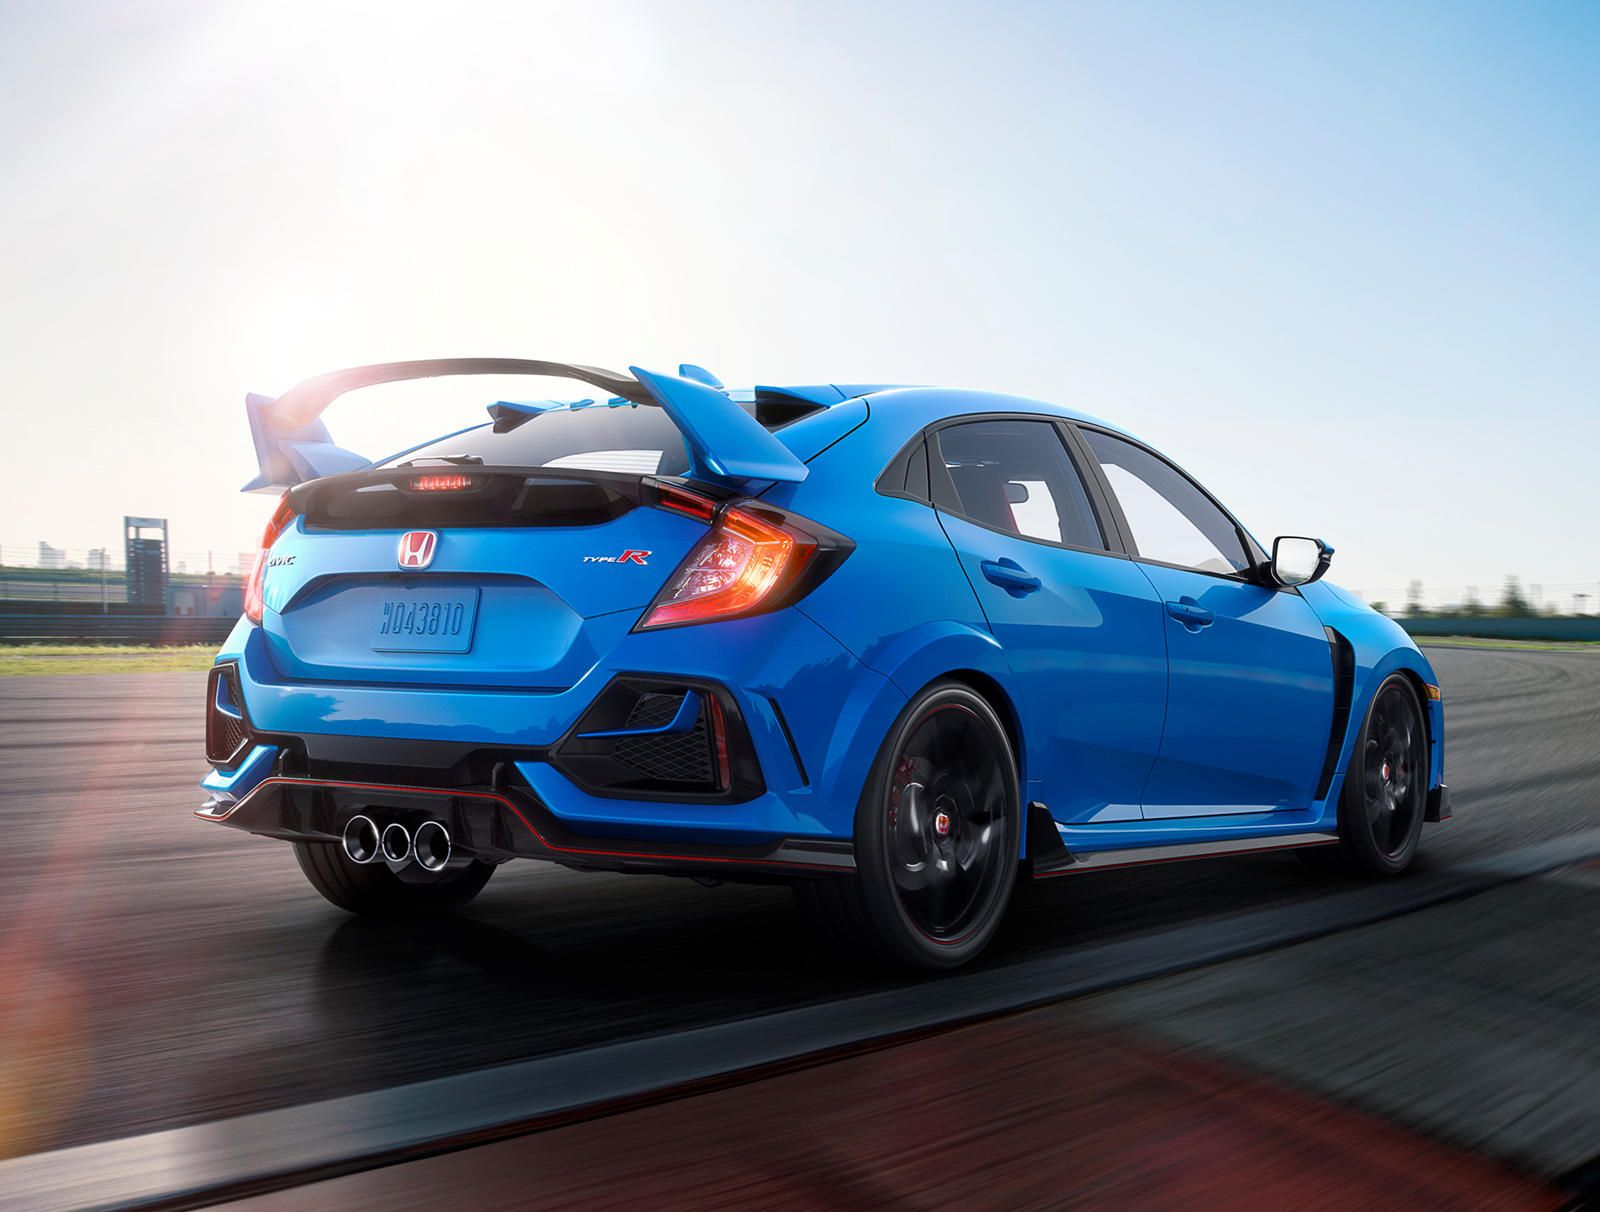 2021 Honda Civic Type R Special Edition Sells Out In Four Minutes 100 Units Sold In 240 Seconds Honda Civic Type R Honda Civic Honda